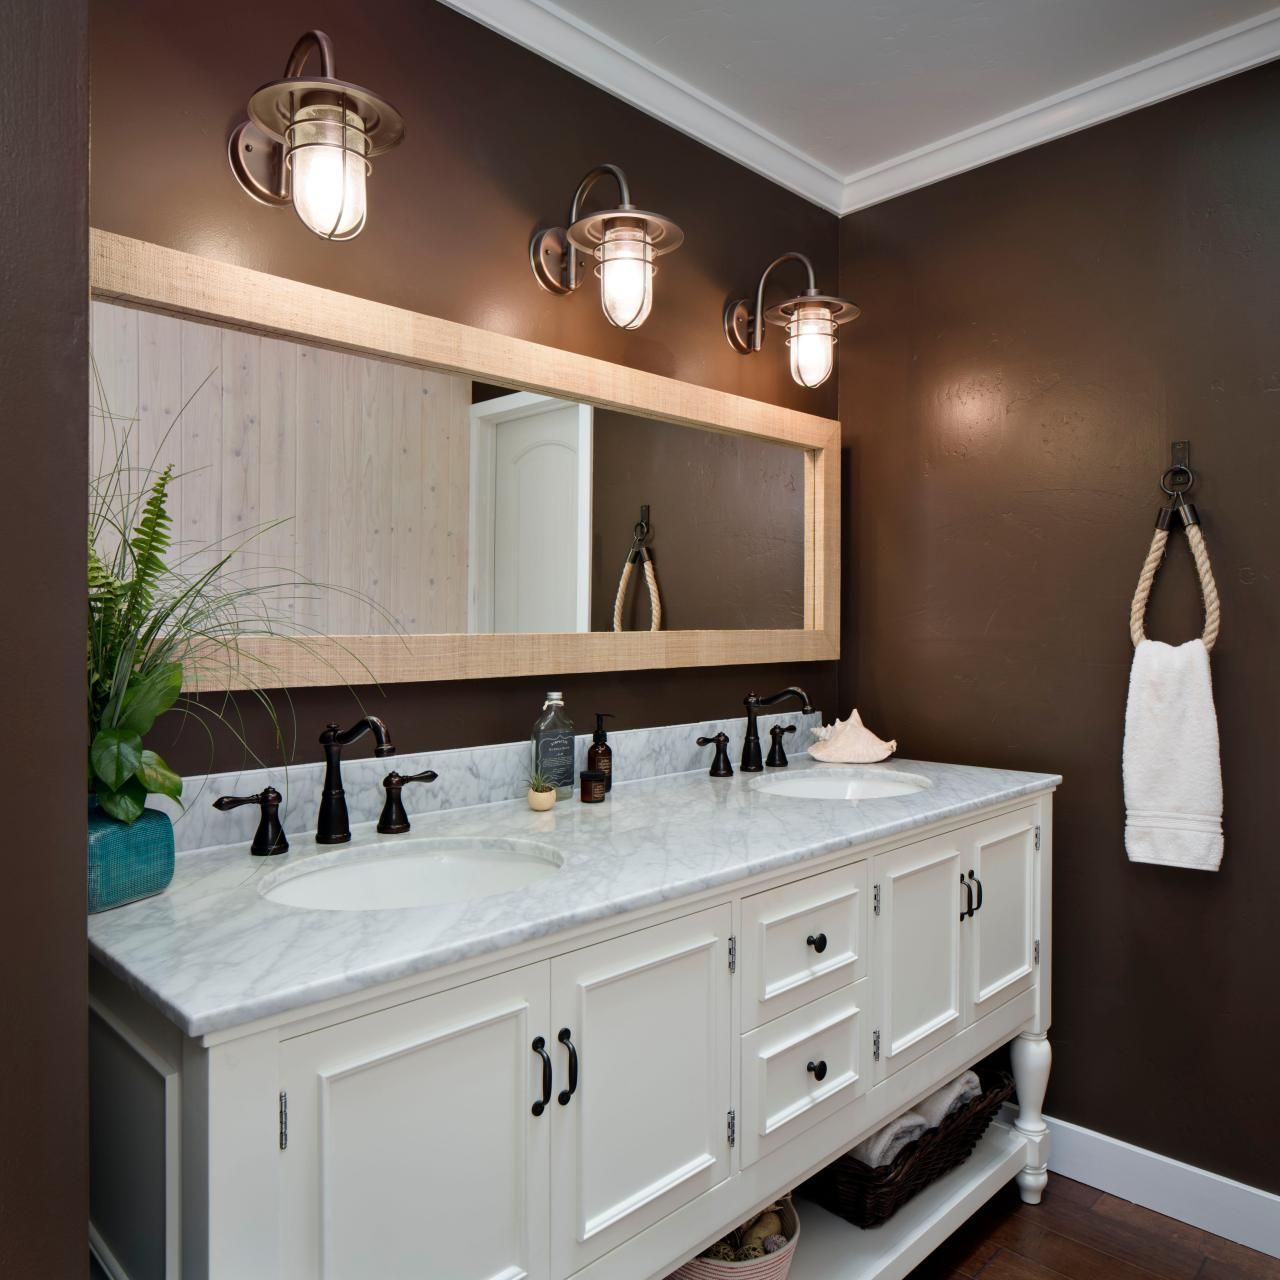 chocolate brown walls in traditional bathroom with white vanity and gray marble countertop hgtv - Bathroom Ideas Brown And White